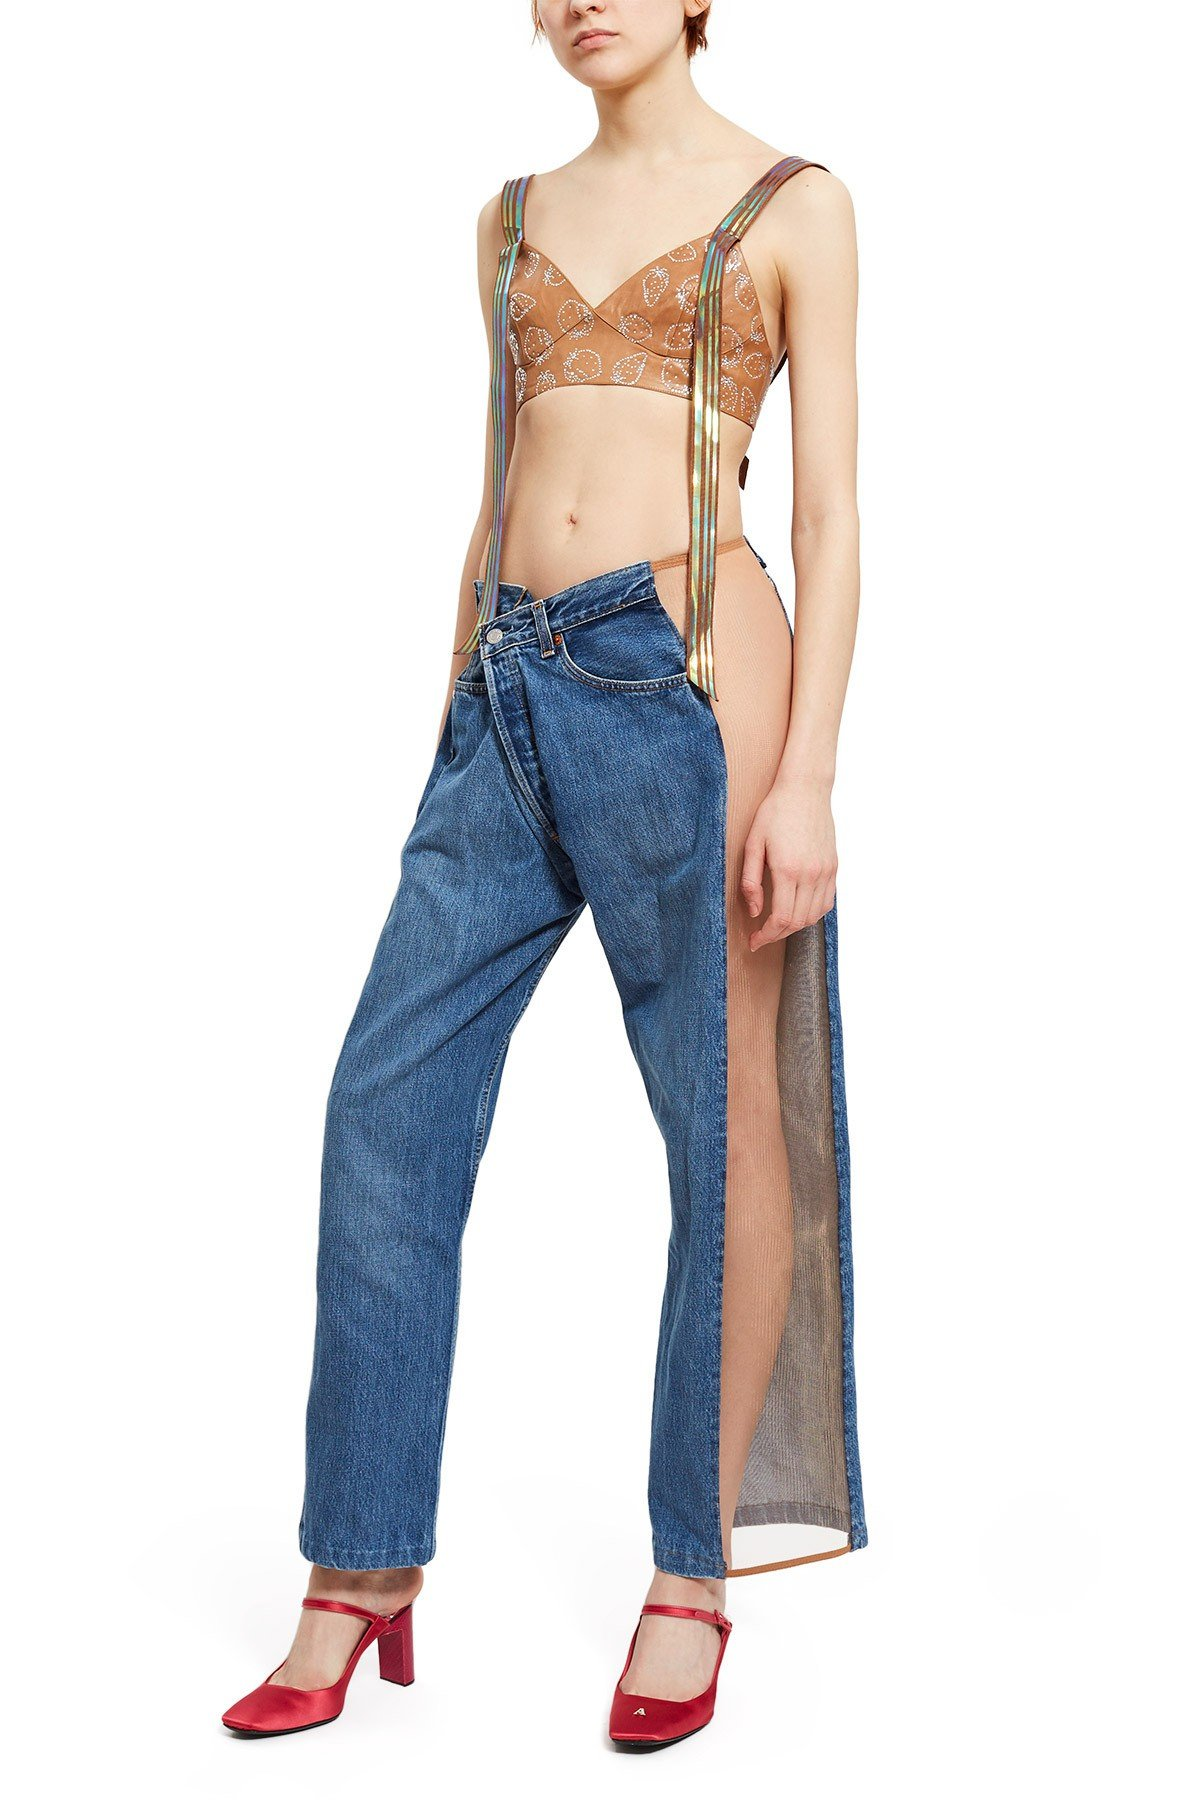 bless jeans mesh